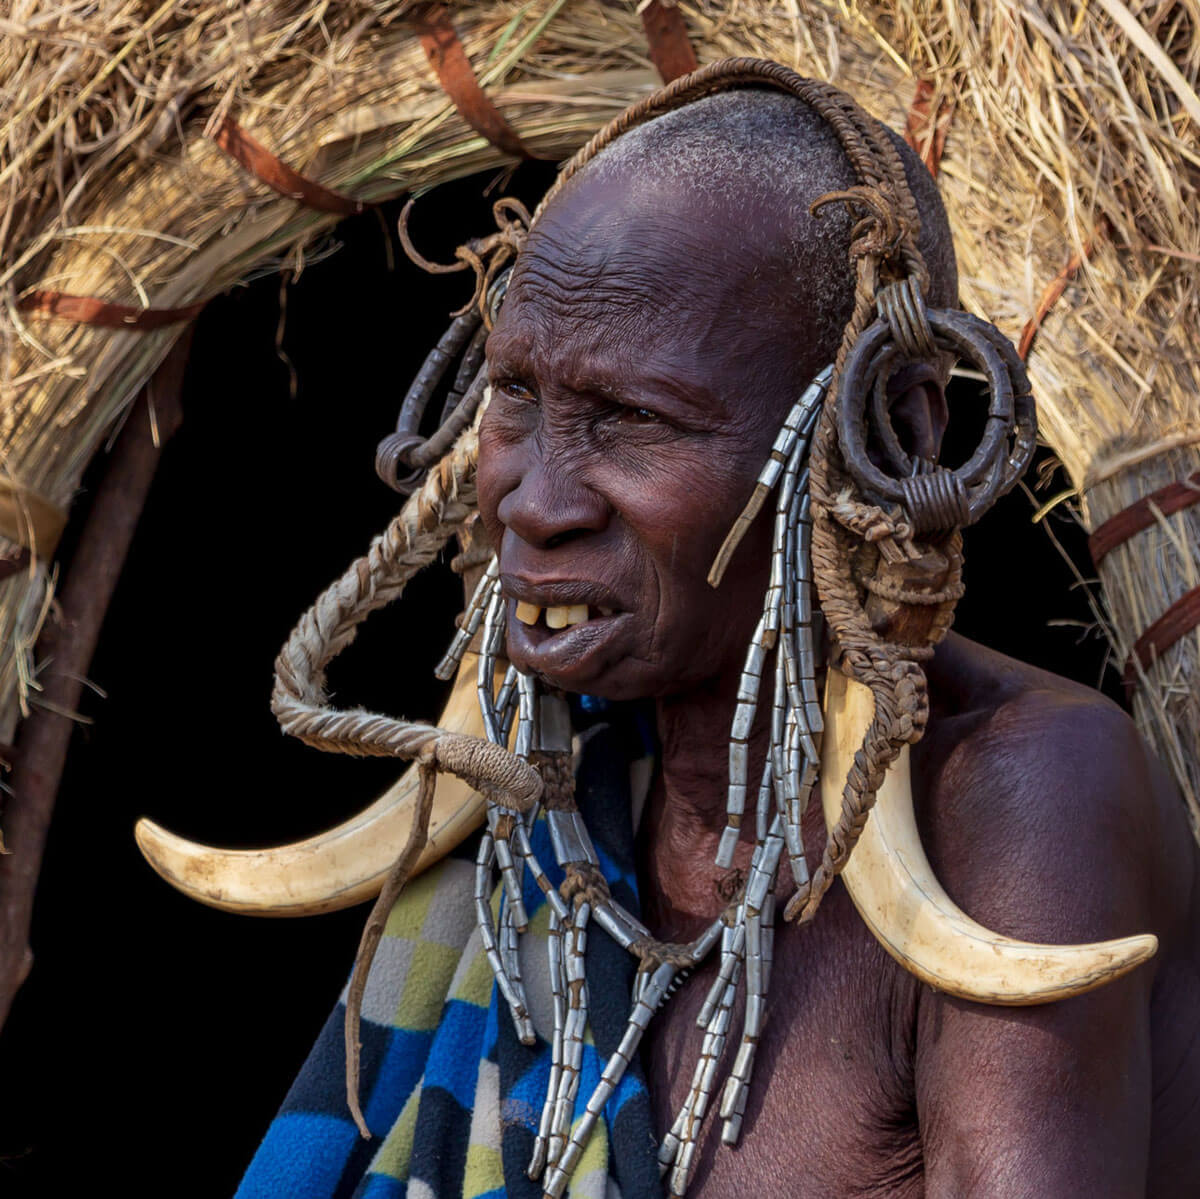 Ethiopia_tribes_mursi_omo_guide_valley_culture_traveling_country_Africa_adventuresinethiopia